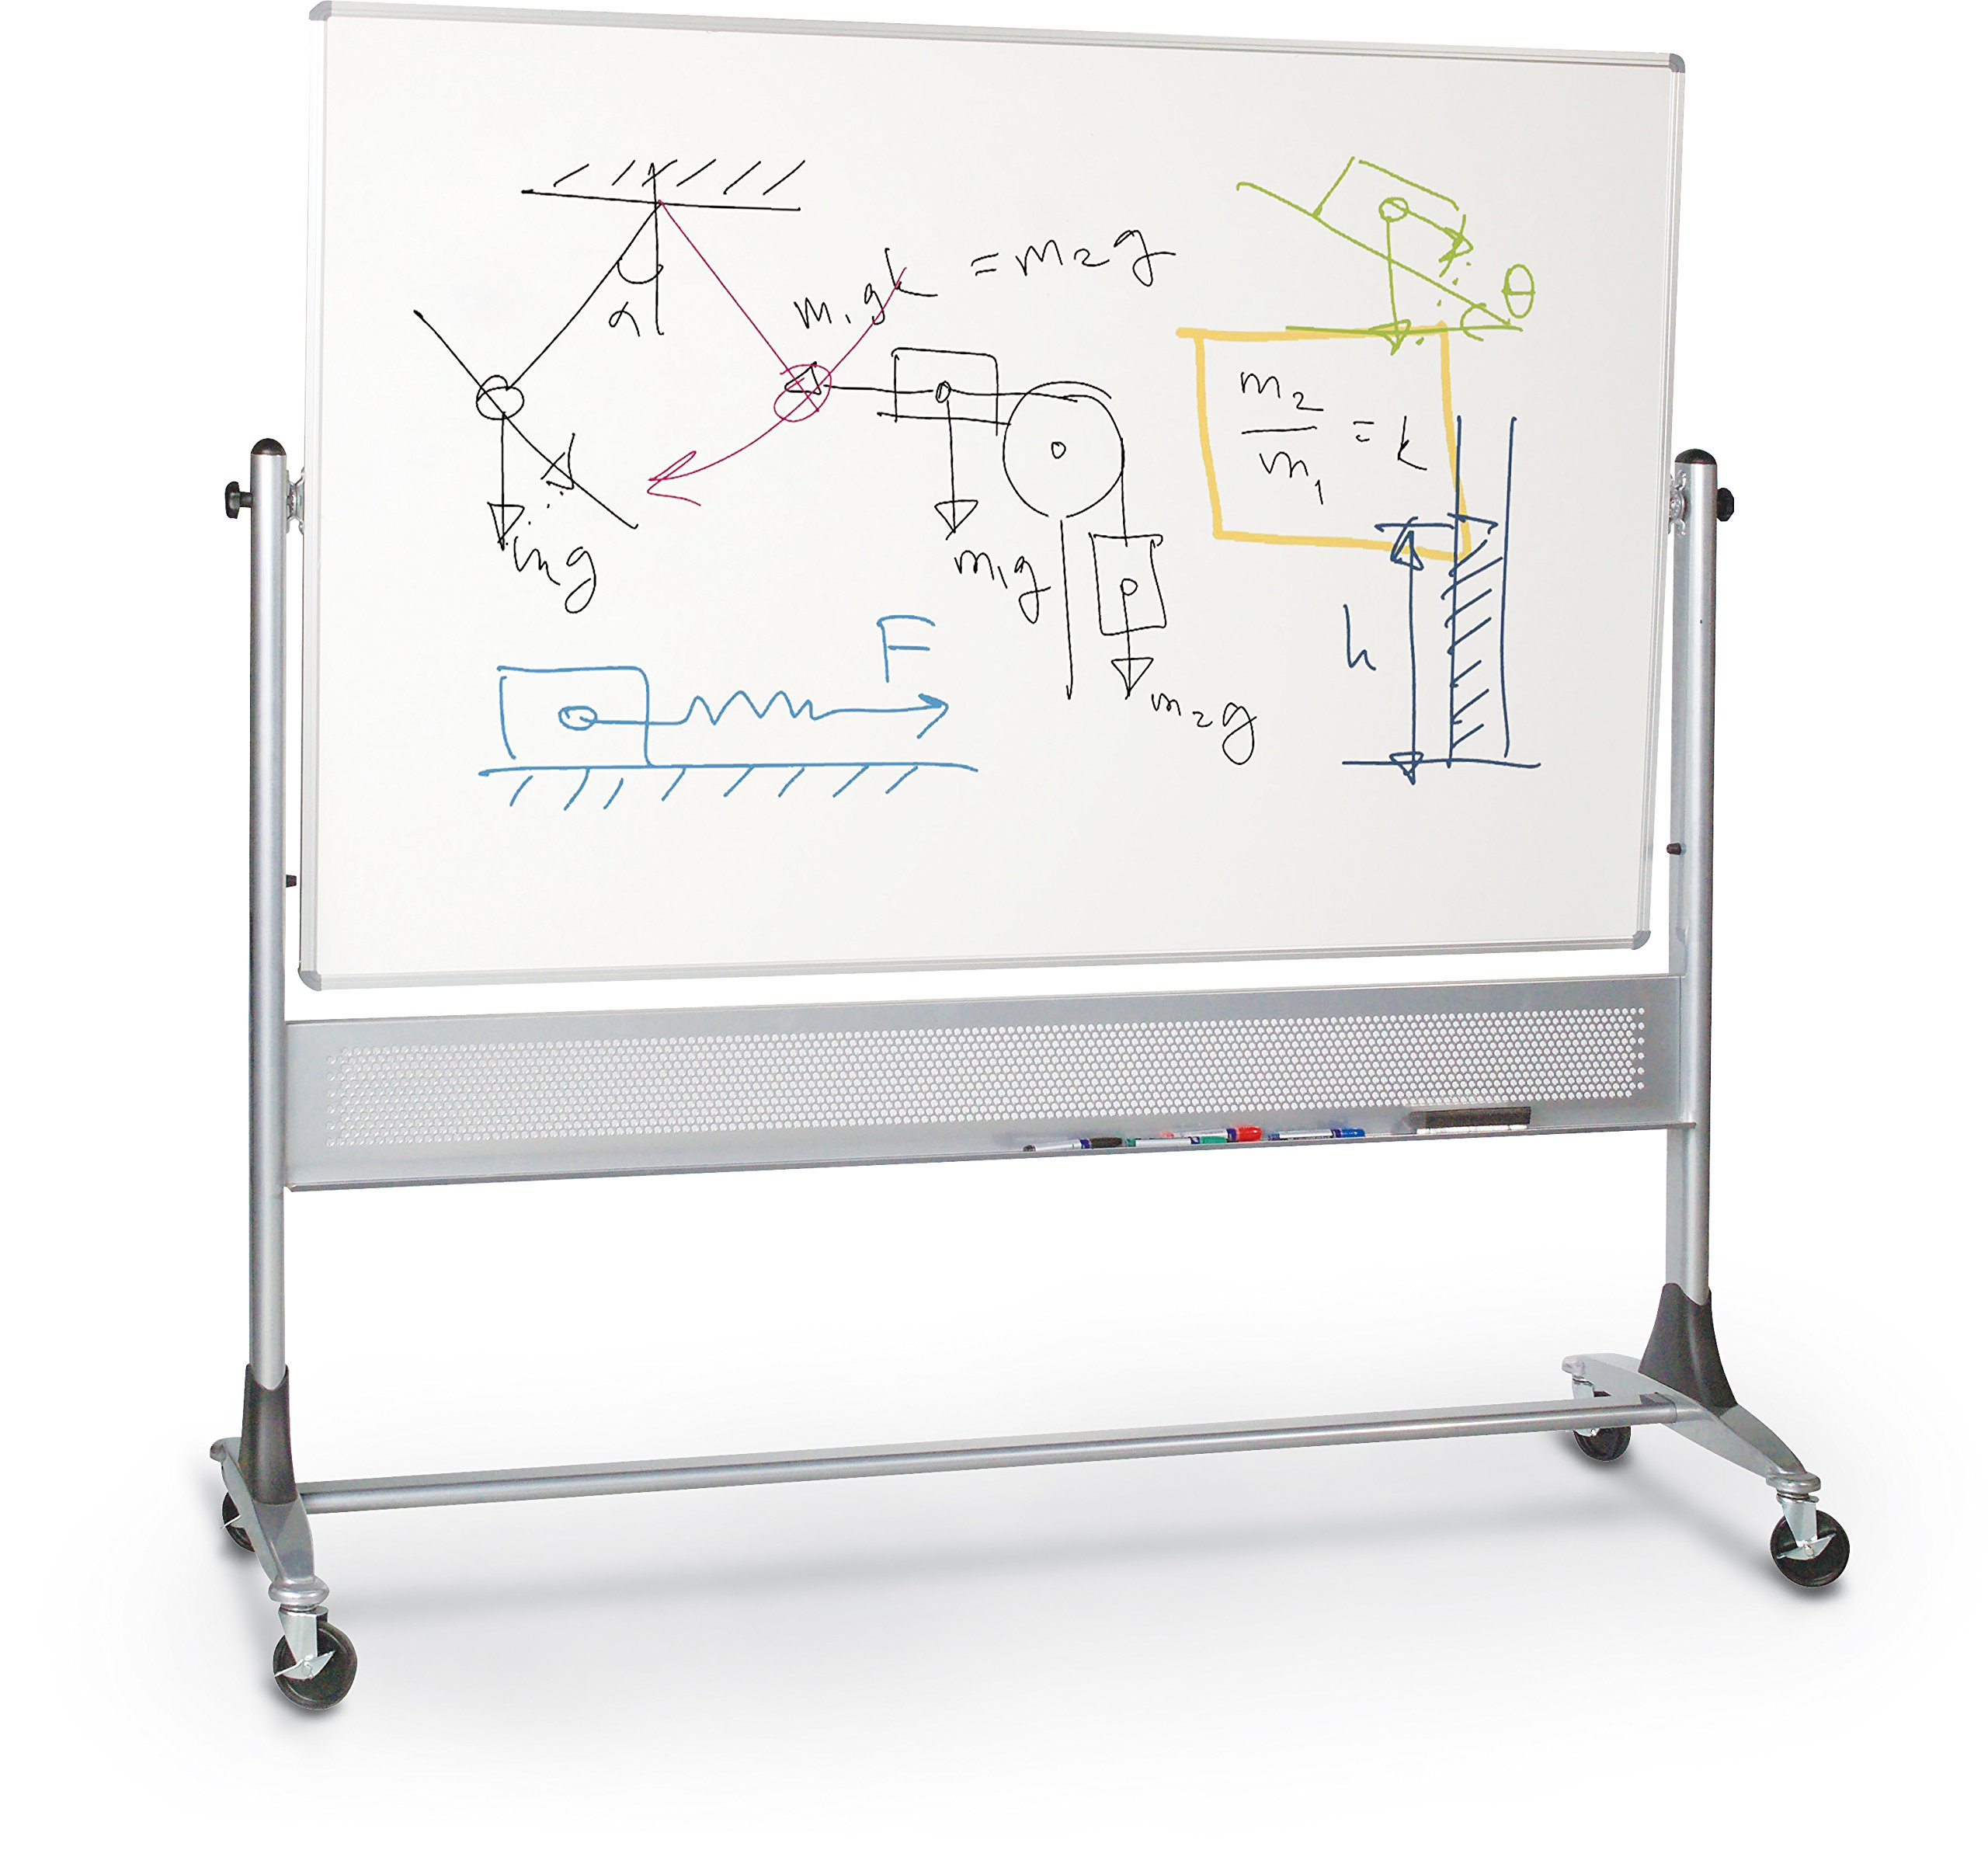 Best-Rite Platinum Mobile Reversible Whiteboard Easel, 4 x 8 Feet Panel Size, Double Sided Dura-Rite HPL Markerboard Surface (669RH-HH)